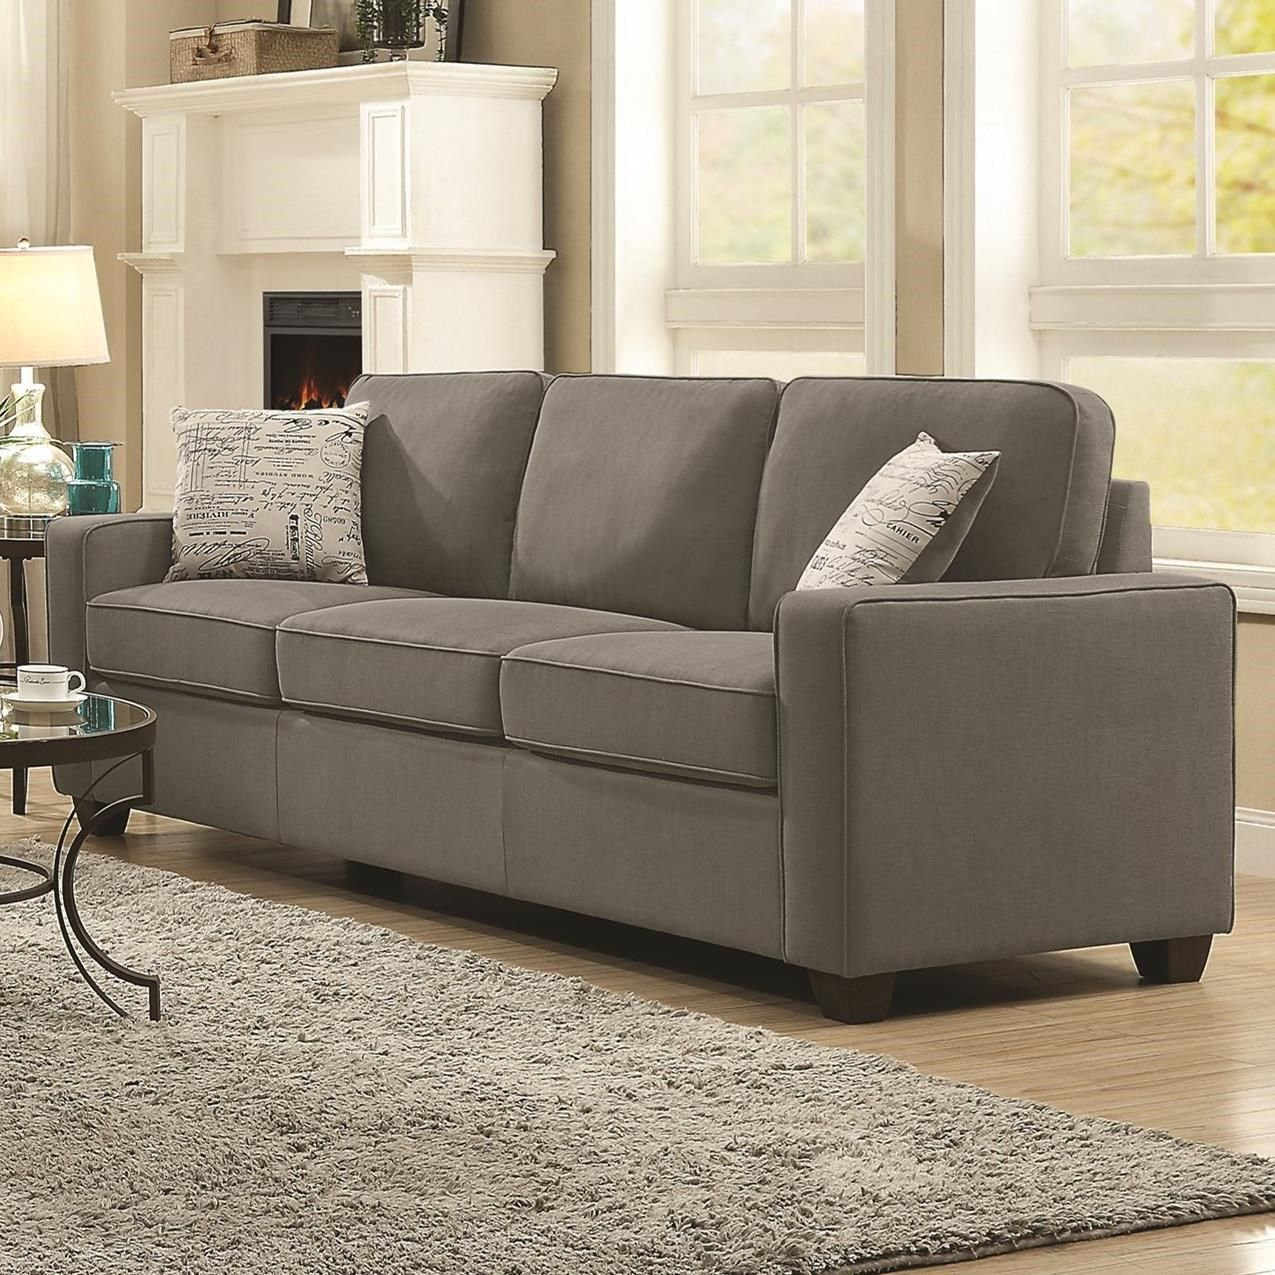 Best Bardem By Coaster Sofa Wth Casual Style By Coaster 400 x 300